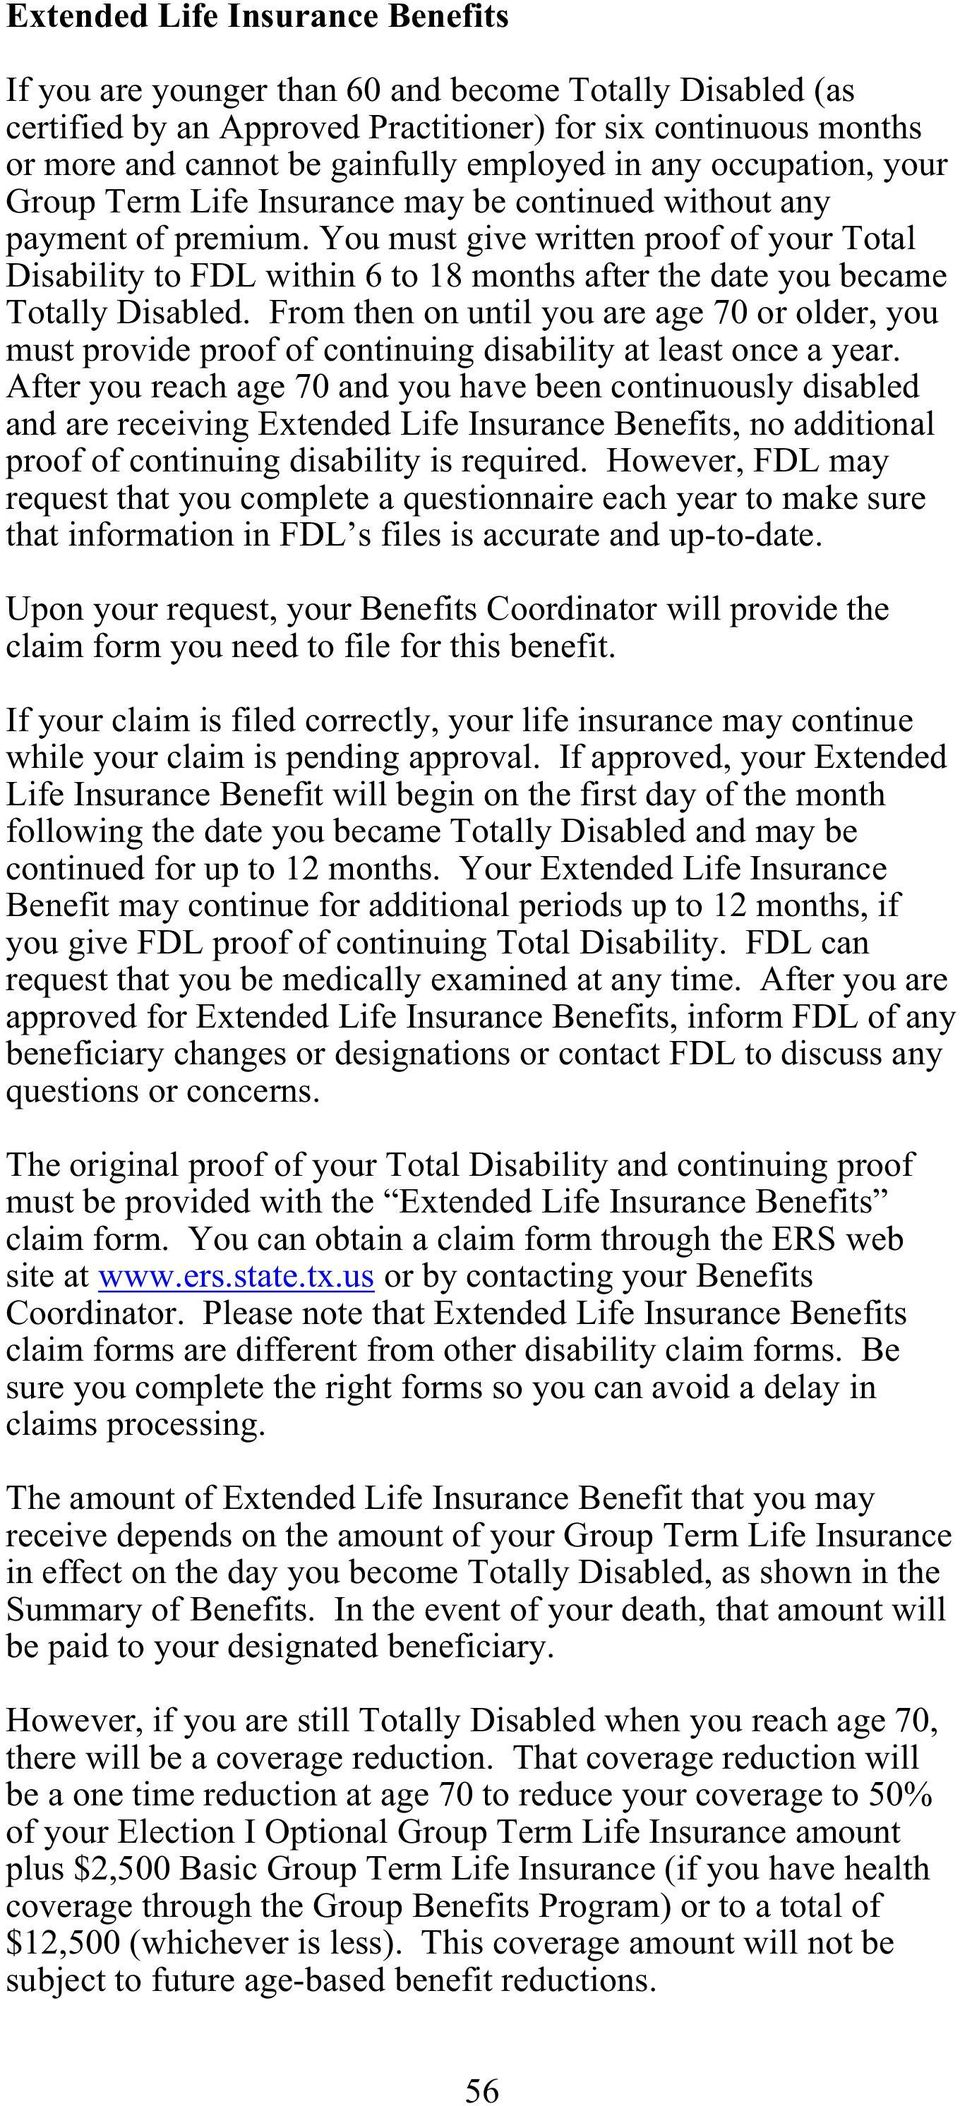 You must give written proof of your Total Disability to FDL within 6 to 18 months after the date you became Totally Disabled.